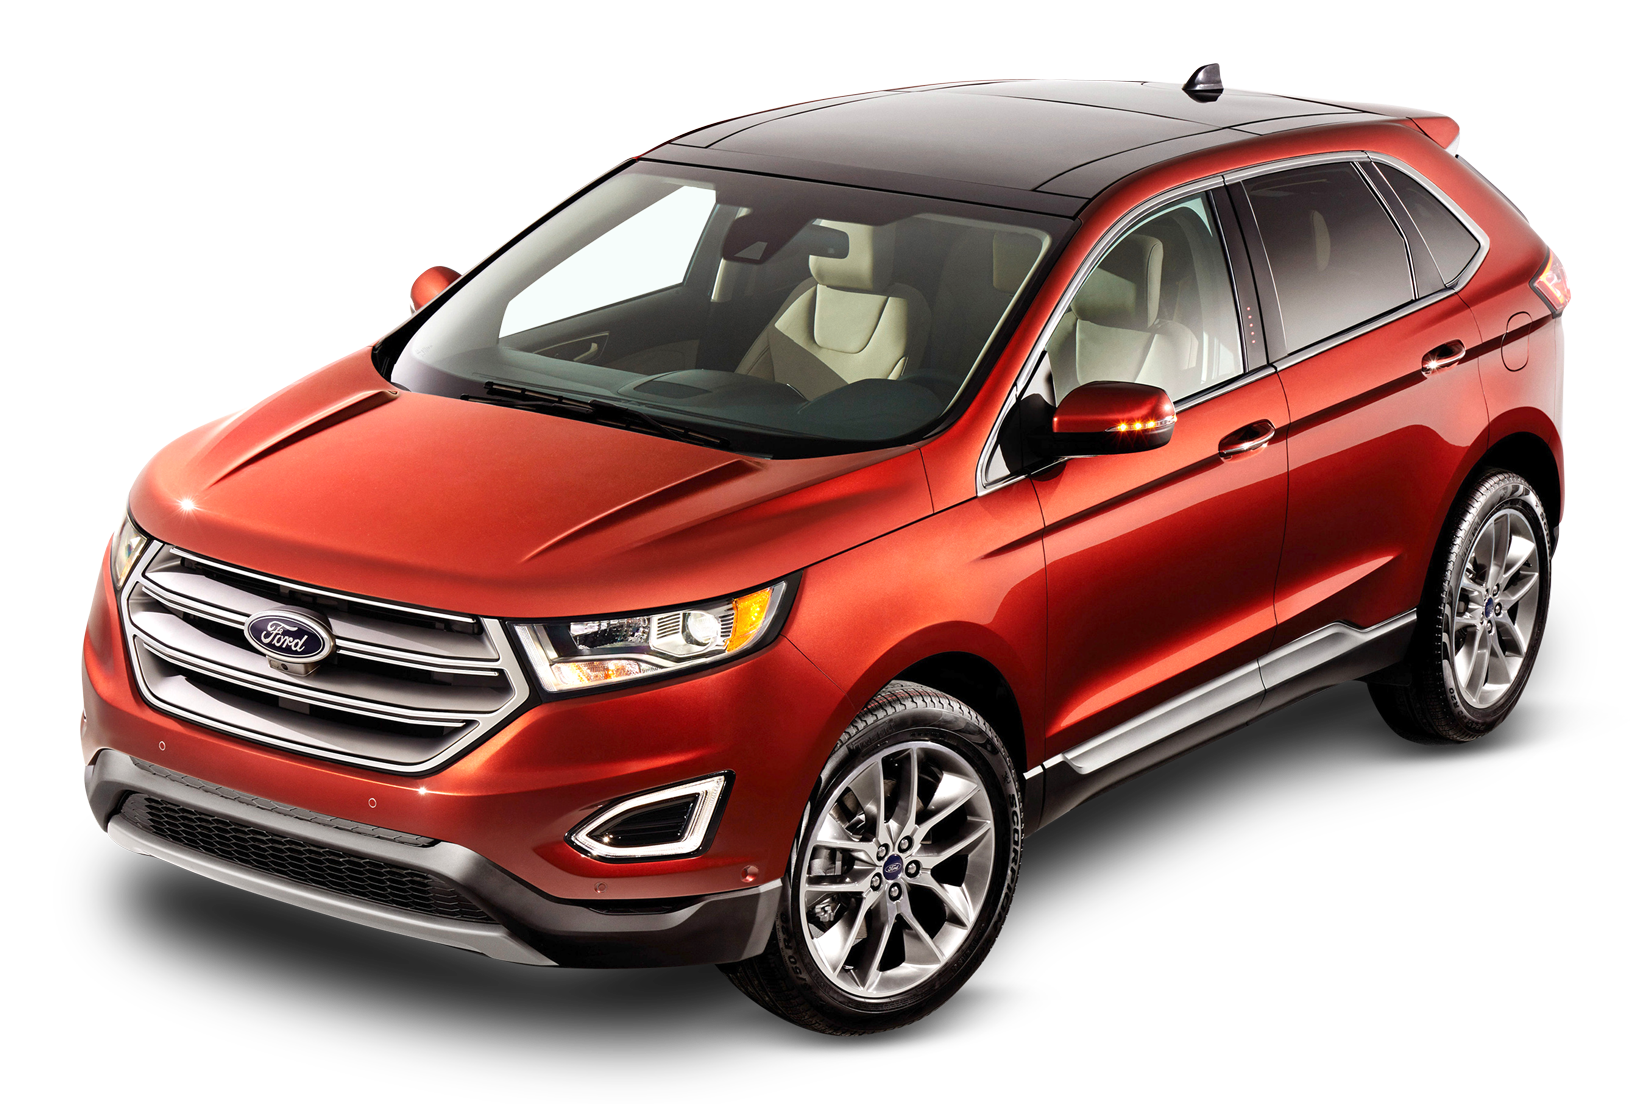 Ford Edge Red Car Png Image Purepng Free Transparent Cc Png Image Library